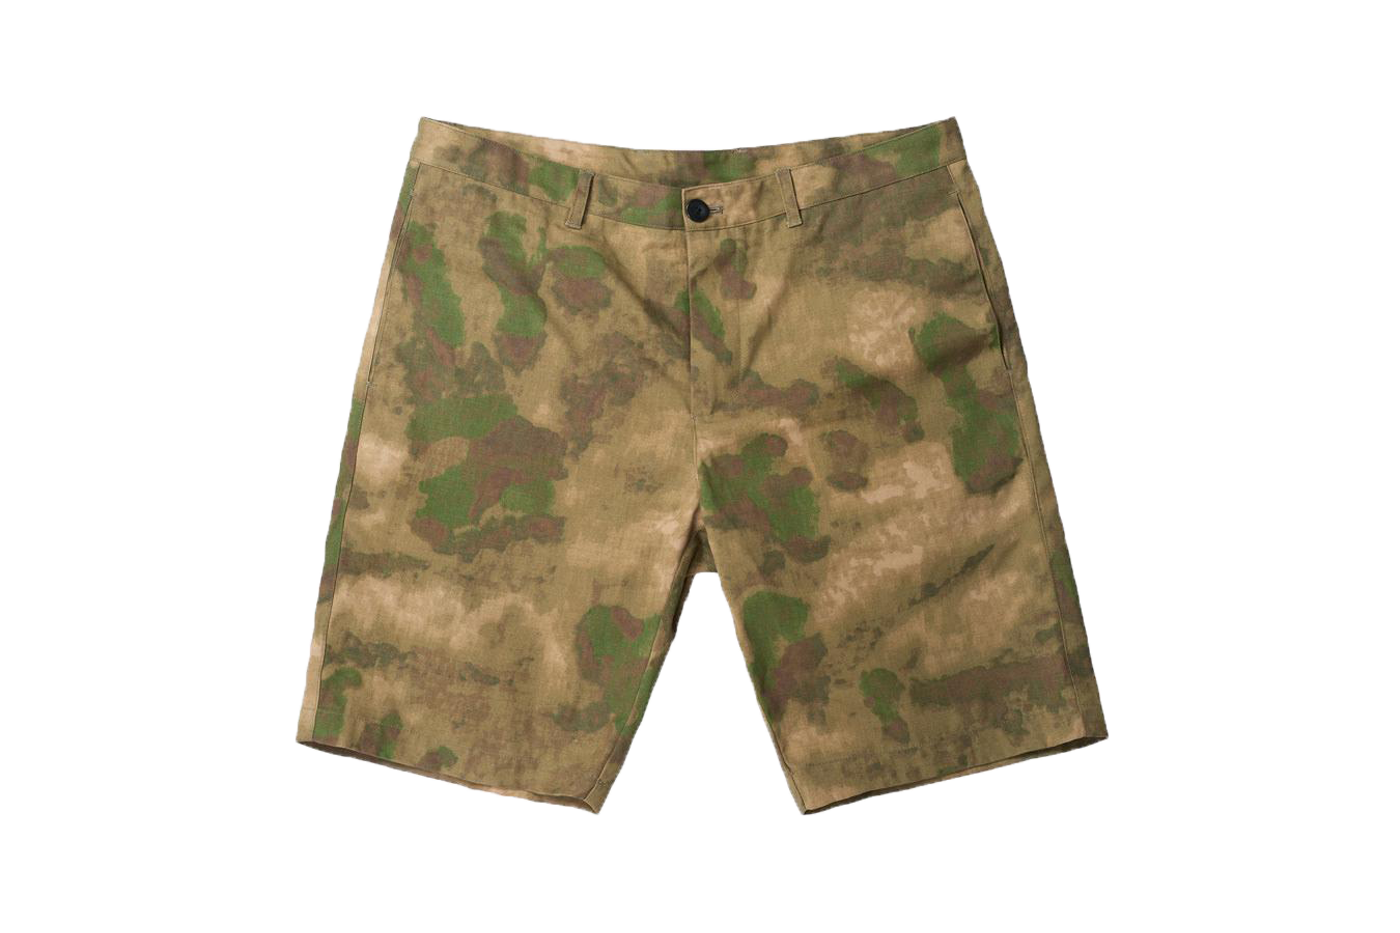 Search and State: Field Shorts in Camo!